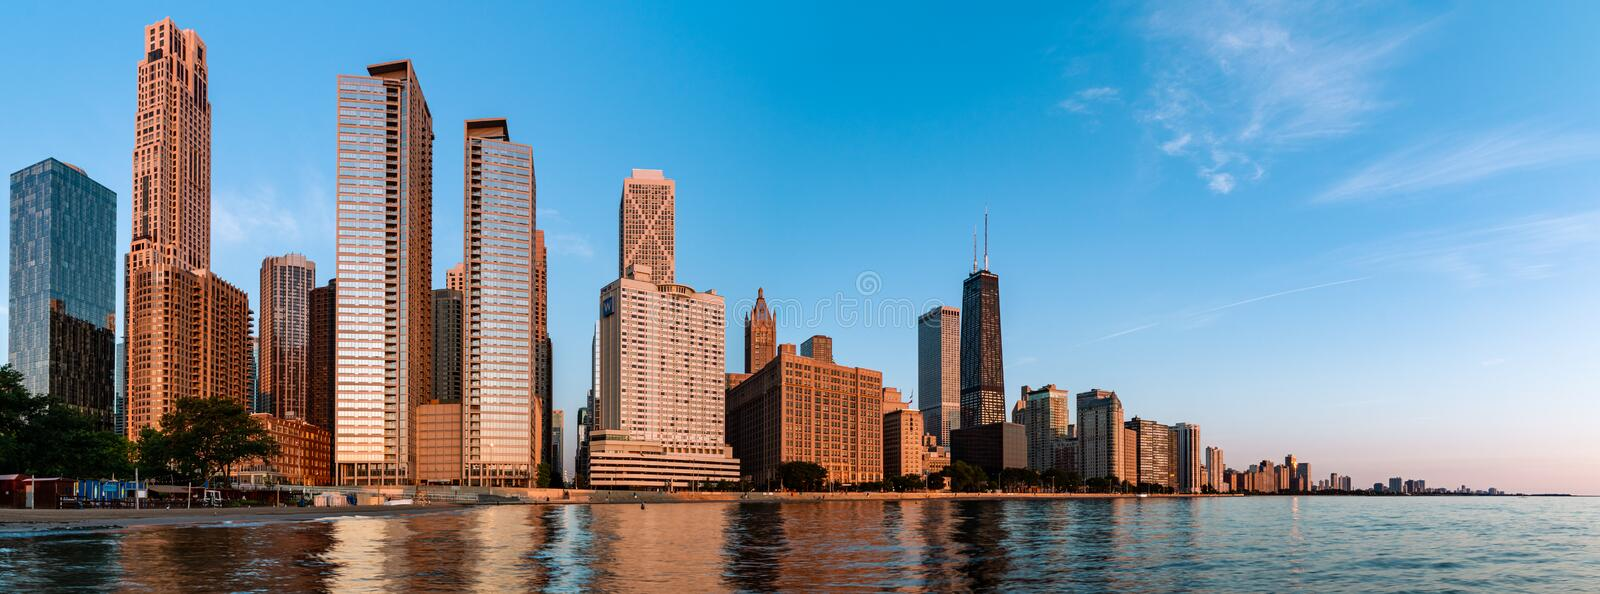 Skyline of Chicago during sunrise. The skyline from Chicago seen from Lake Michigan during sunrise. The rising sun gives a nice warm glow to the buildings royalty free stock photo